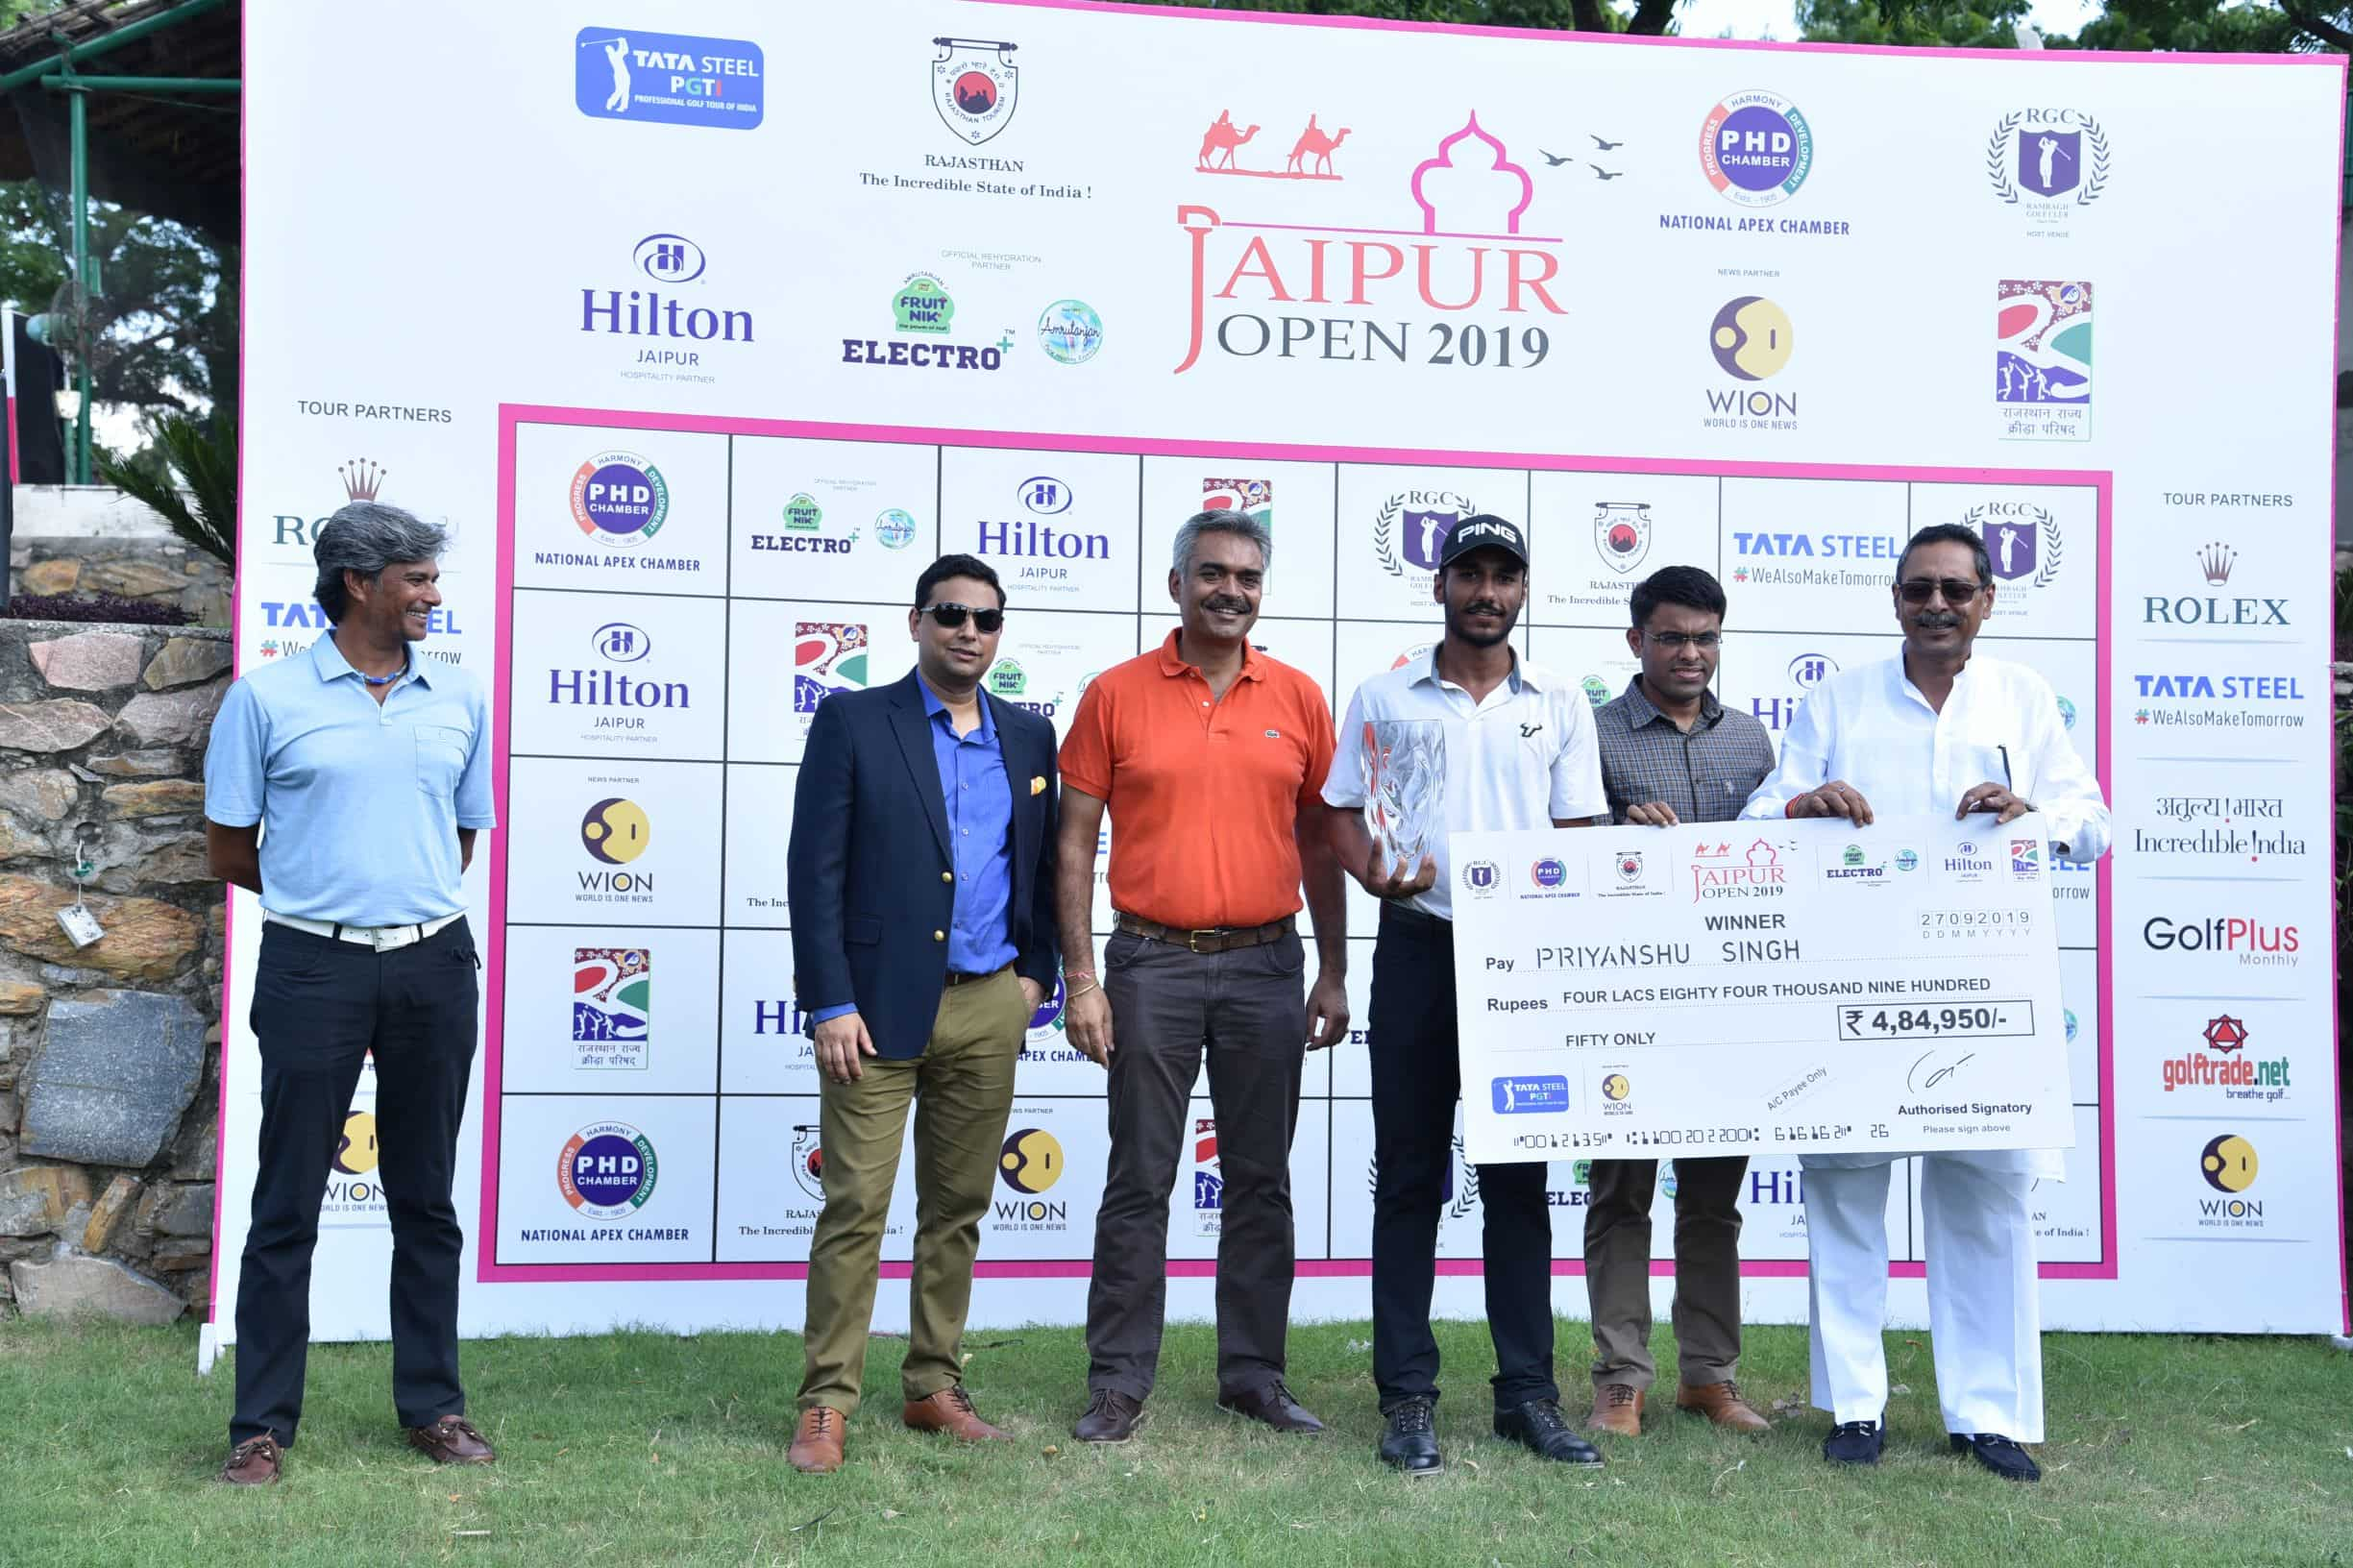 Priyanshu's winning purse of Rs. 4,84,950, lifted him from 29th to 14th position in the TATA Steel PGTI Order of Merit